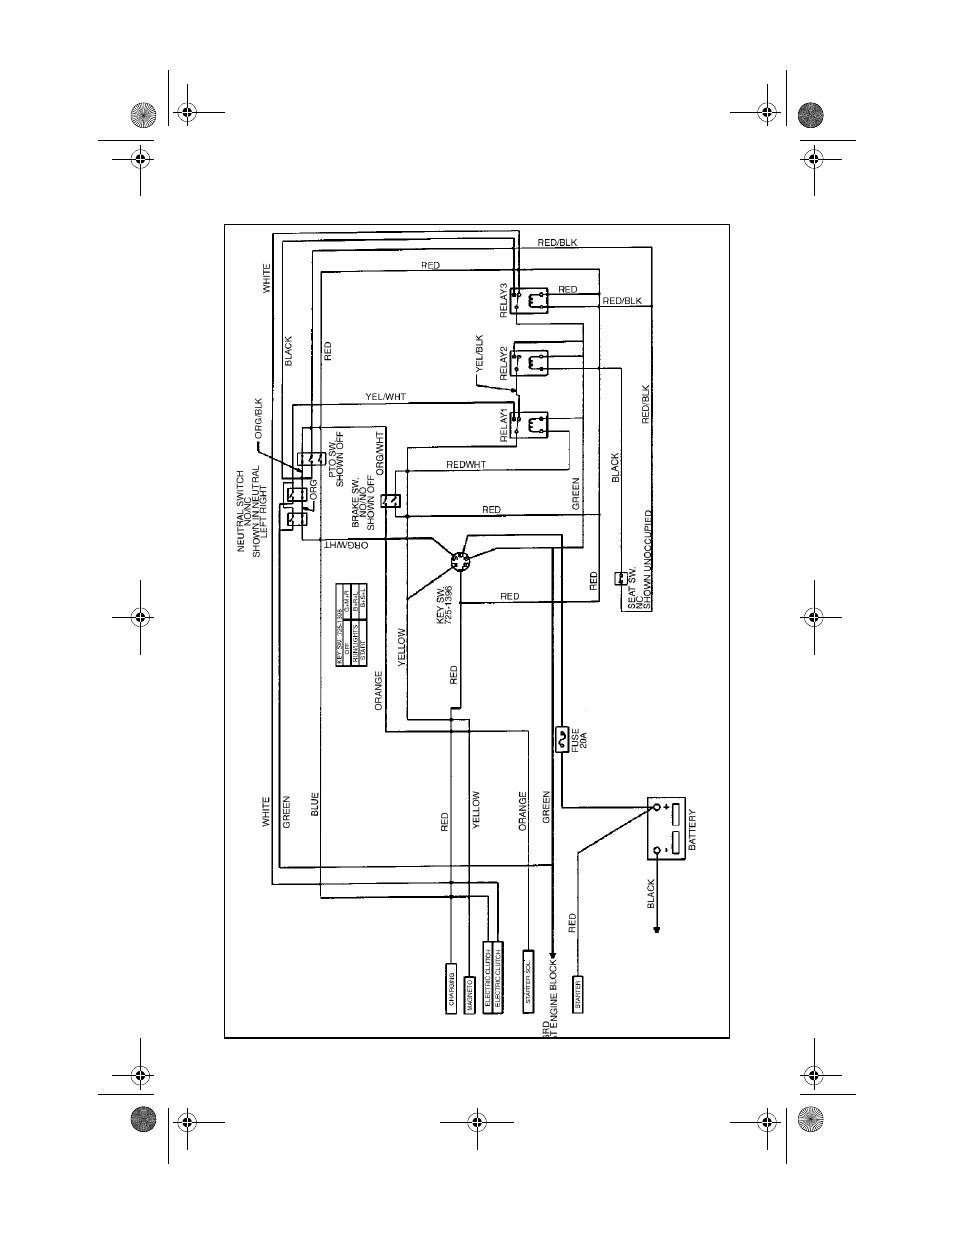 cub-cadet-3654-page31 Yamaha Hp Wiring Diagram on suzuki quadrunner 160 parts diagram, yamaha solenoid diagram, yamaha steering diagram, yamaha motor diagram, yamaha ignition diagram, yamaha wiring code, yamaha schematics,